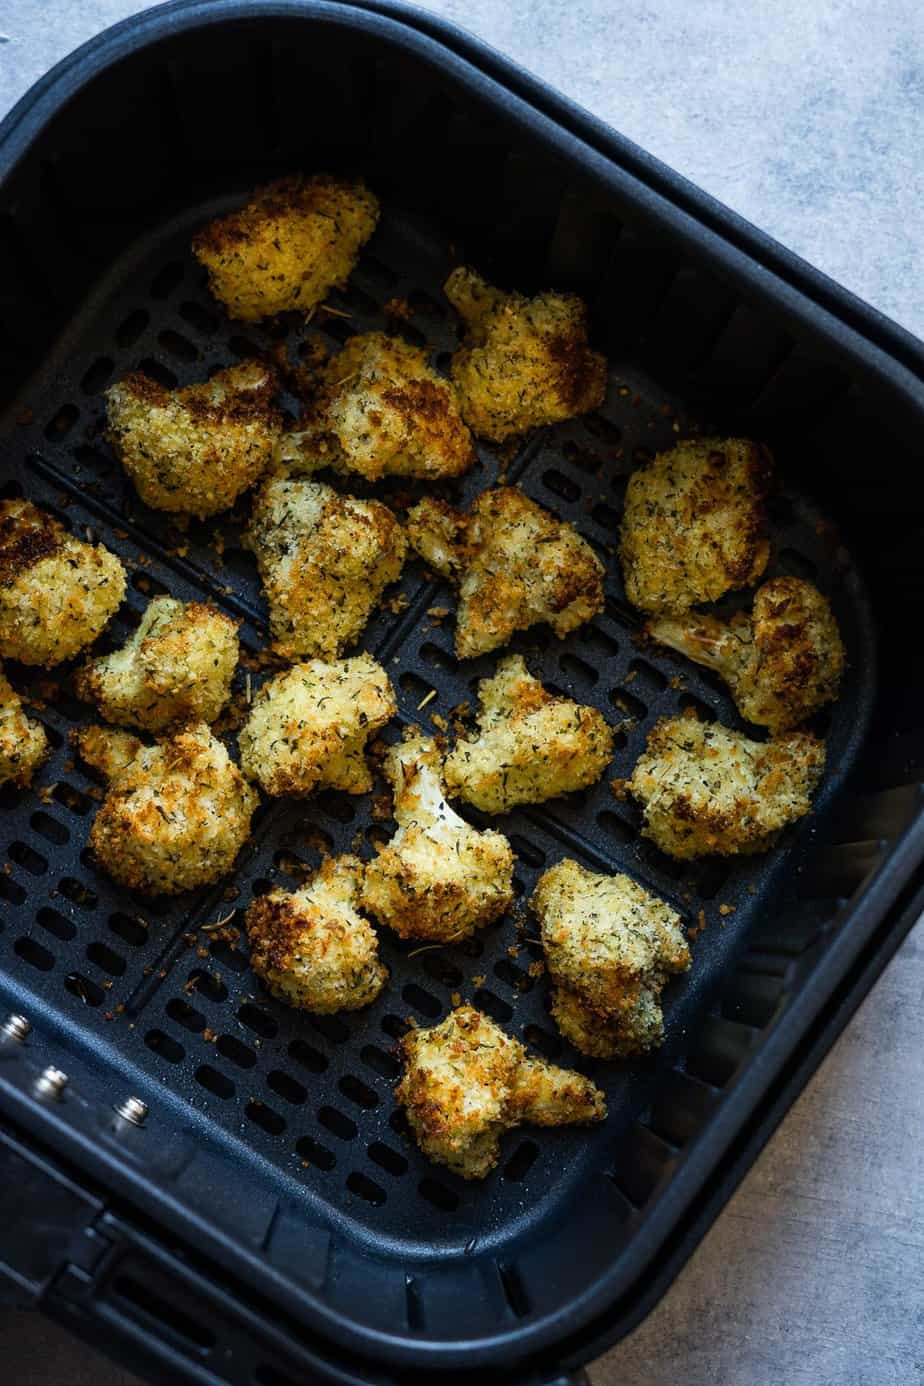 perfectly crispy cauliflower bites inside the air fryer basket after cooking.